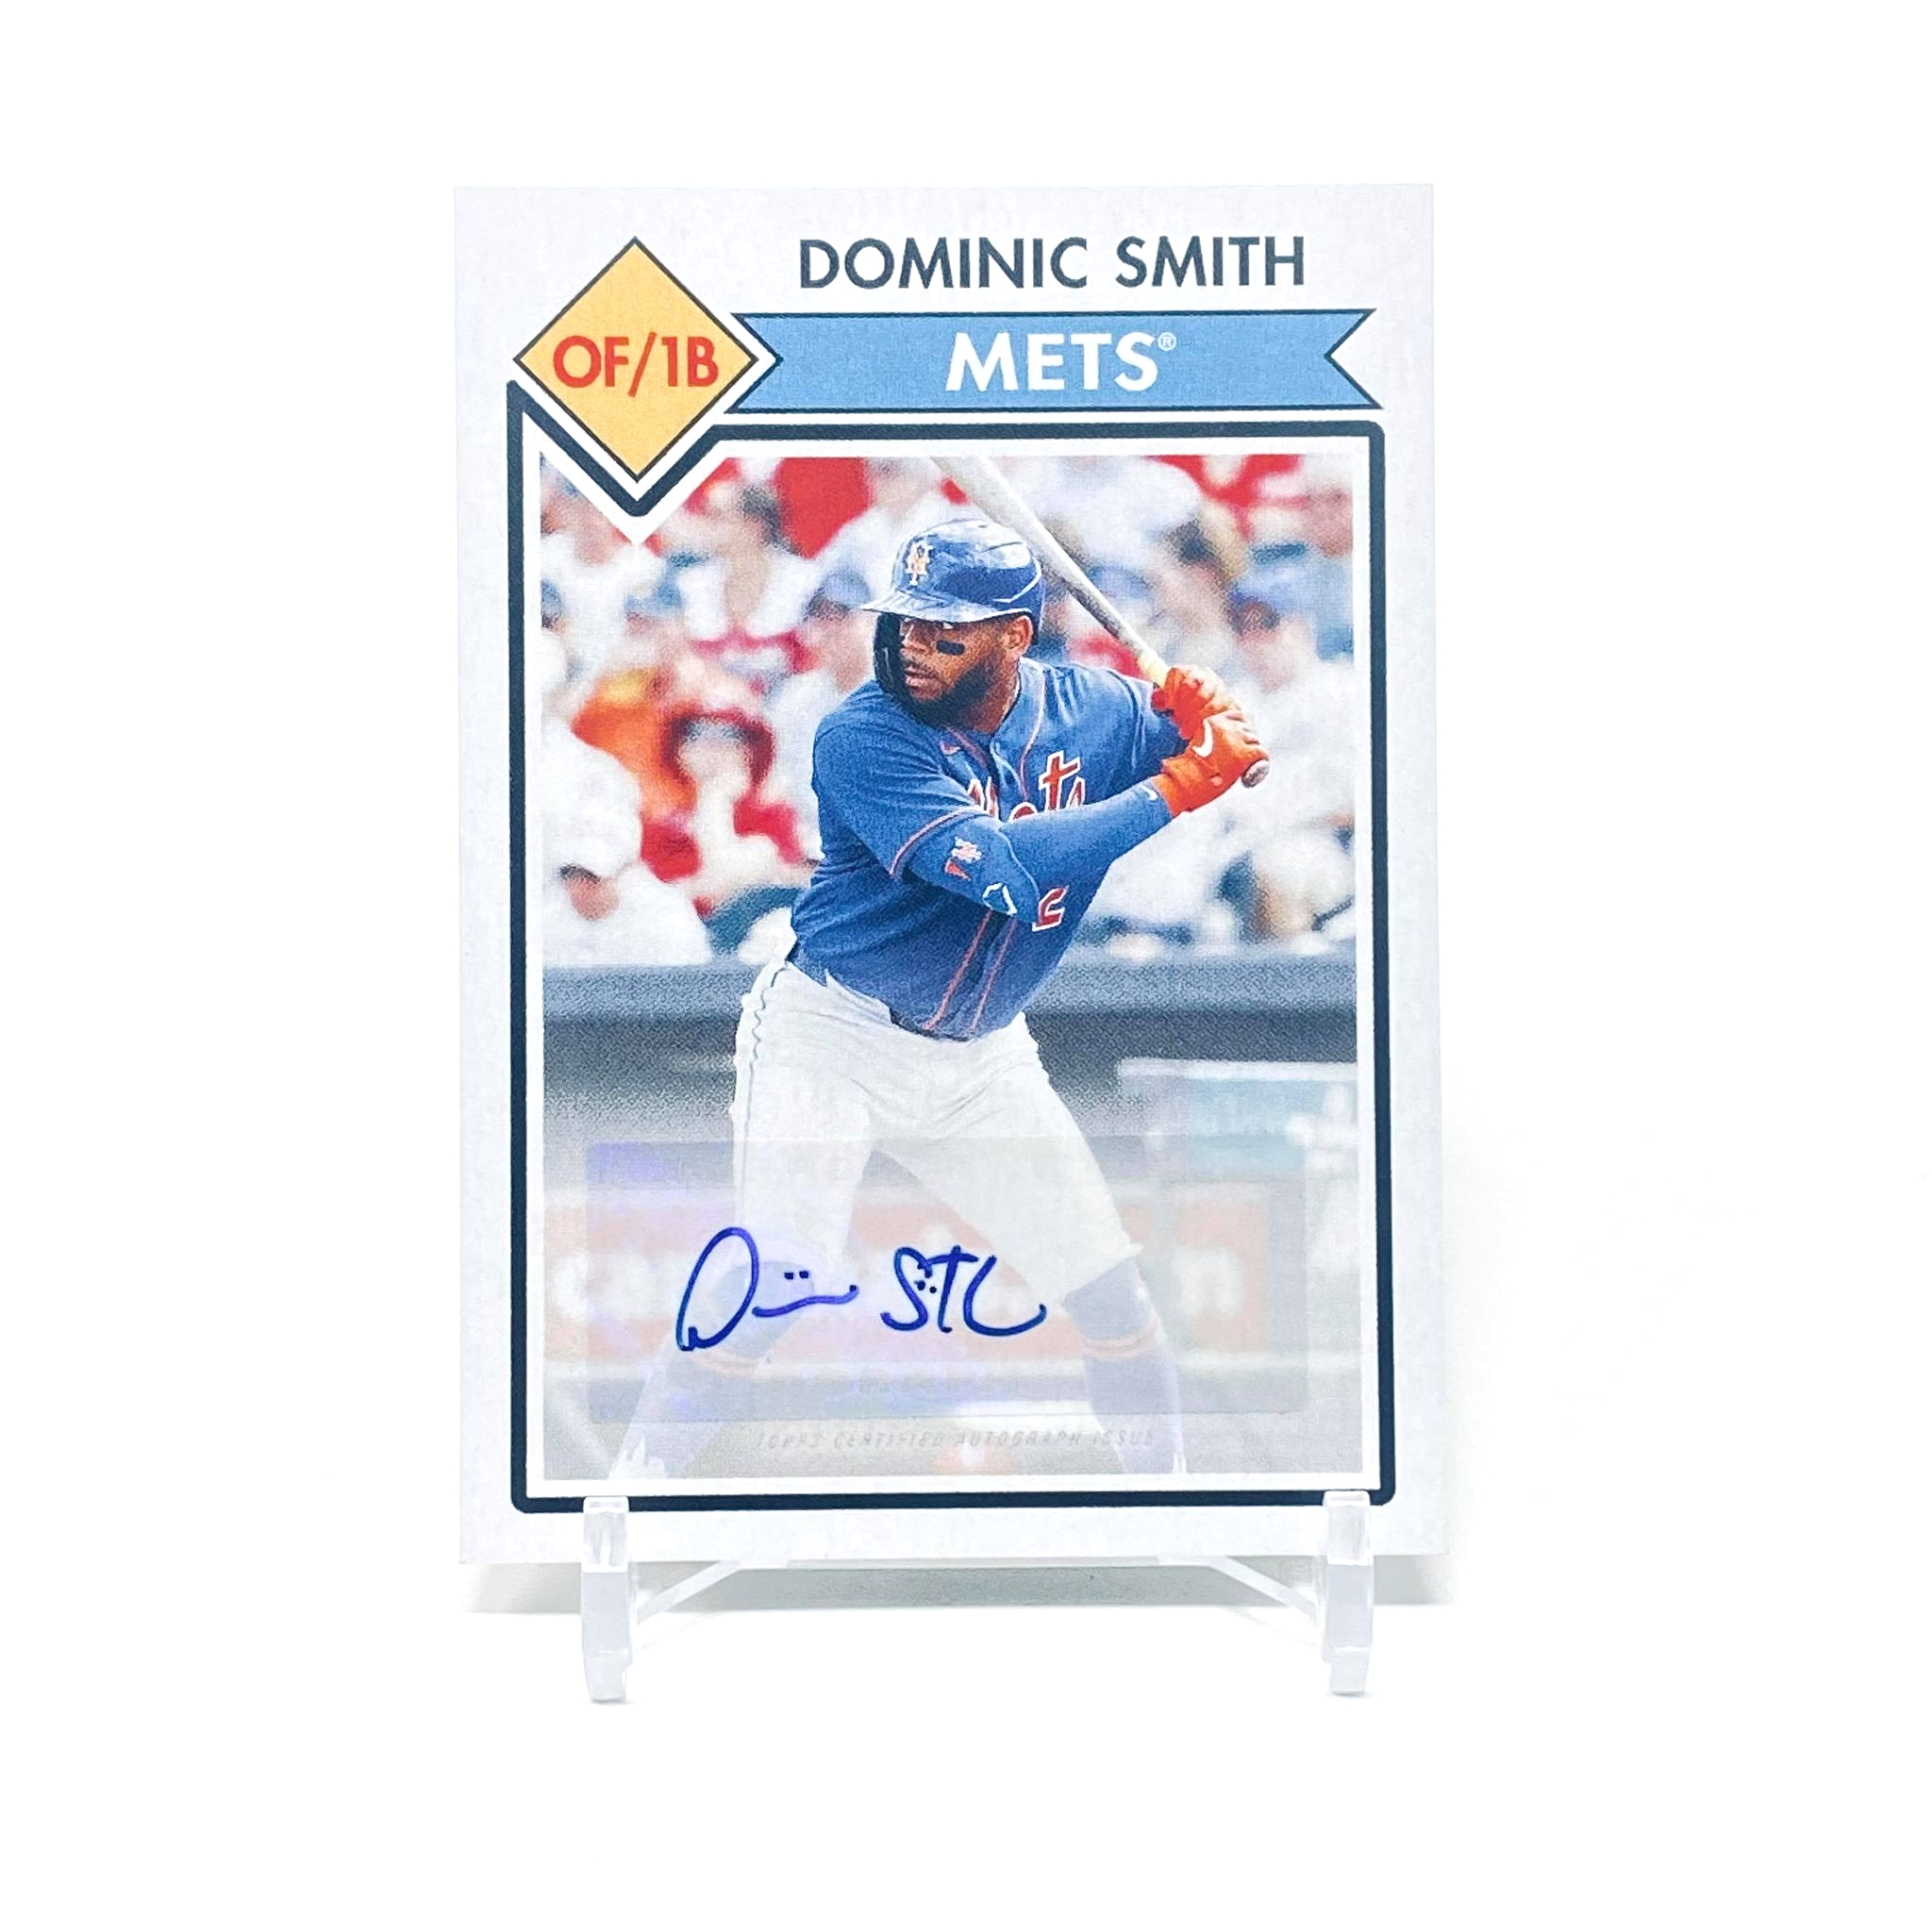 2021 Topps 582 Montgomery Club Dominic Smith Autograph New York Mets